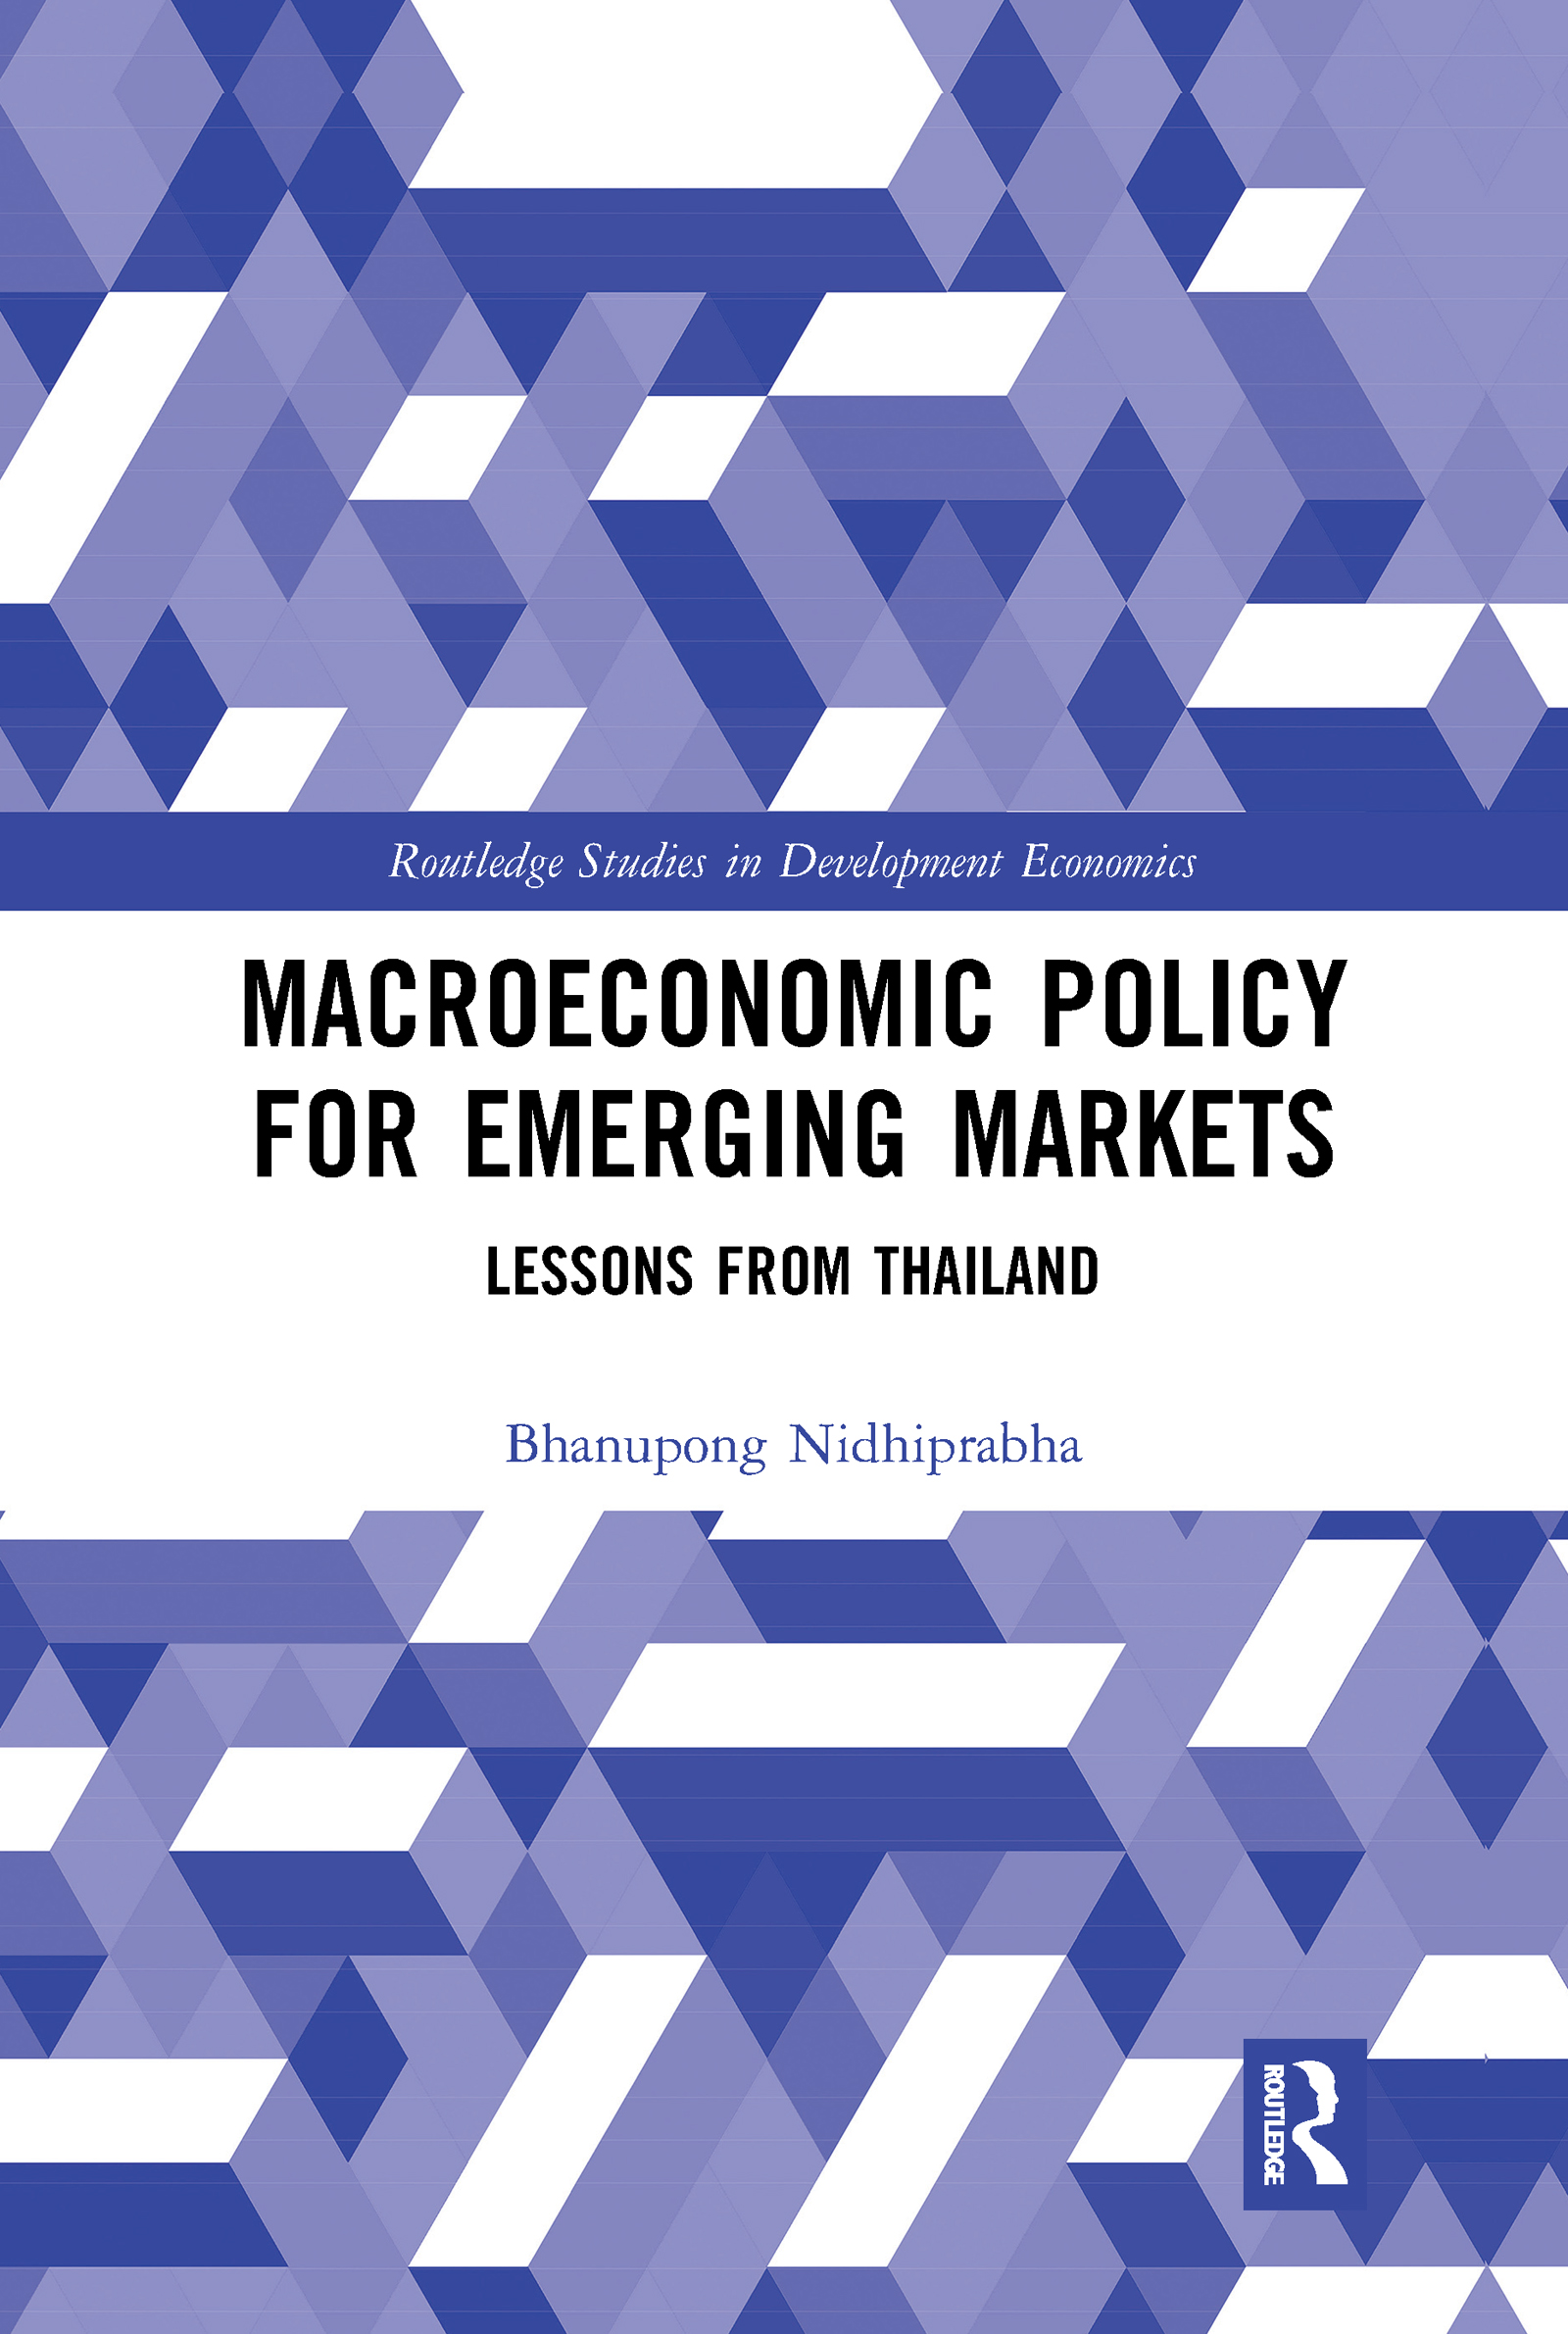 Macroeconomic Policy for Emerging Markets